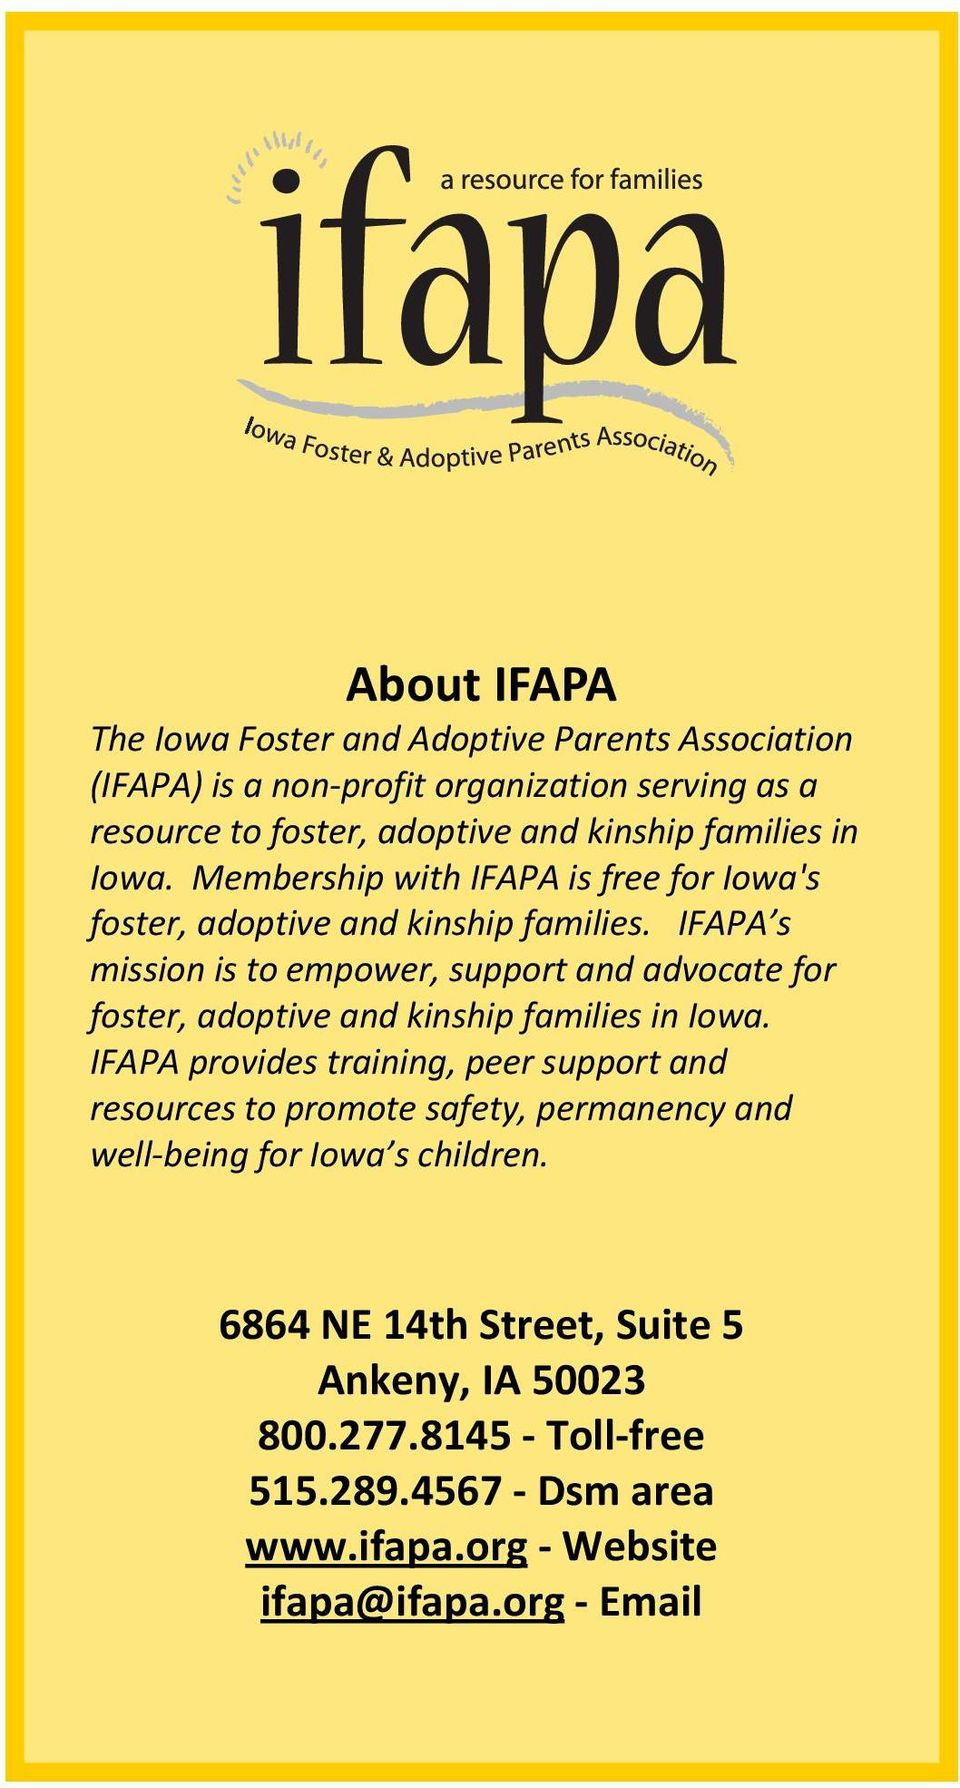 IFAPA s mission is to empower, support and advocate for foster, adoptive and kinship families in Iowa.